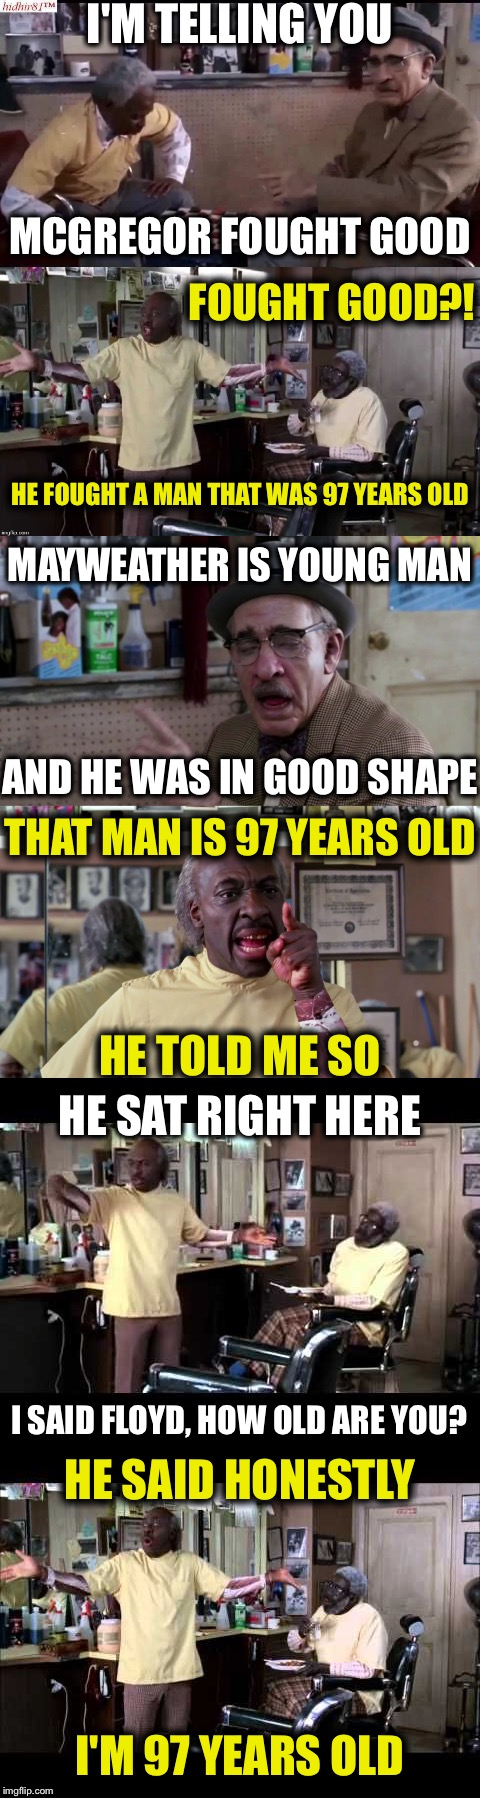 I'M TELLING YOU MCGREGOR FOUGHT GOOD FOUGHT GOOD?! HE FOUGHT A MAN THAT WAS 97 YEARS OLD MAYWEATHER IS YOUNG MAN AND HE WAS IN GOOD SHAPE TH | image tagged in memes,funny,coming to america,floyd mayweather,conor mcgregor,eddie murphy | made w/ Imgflip meme maker